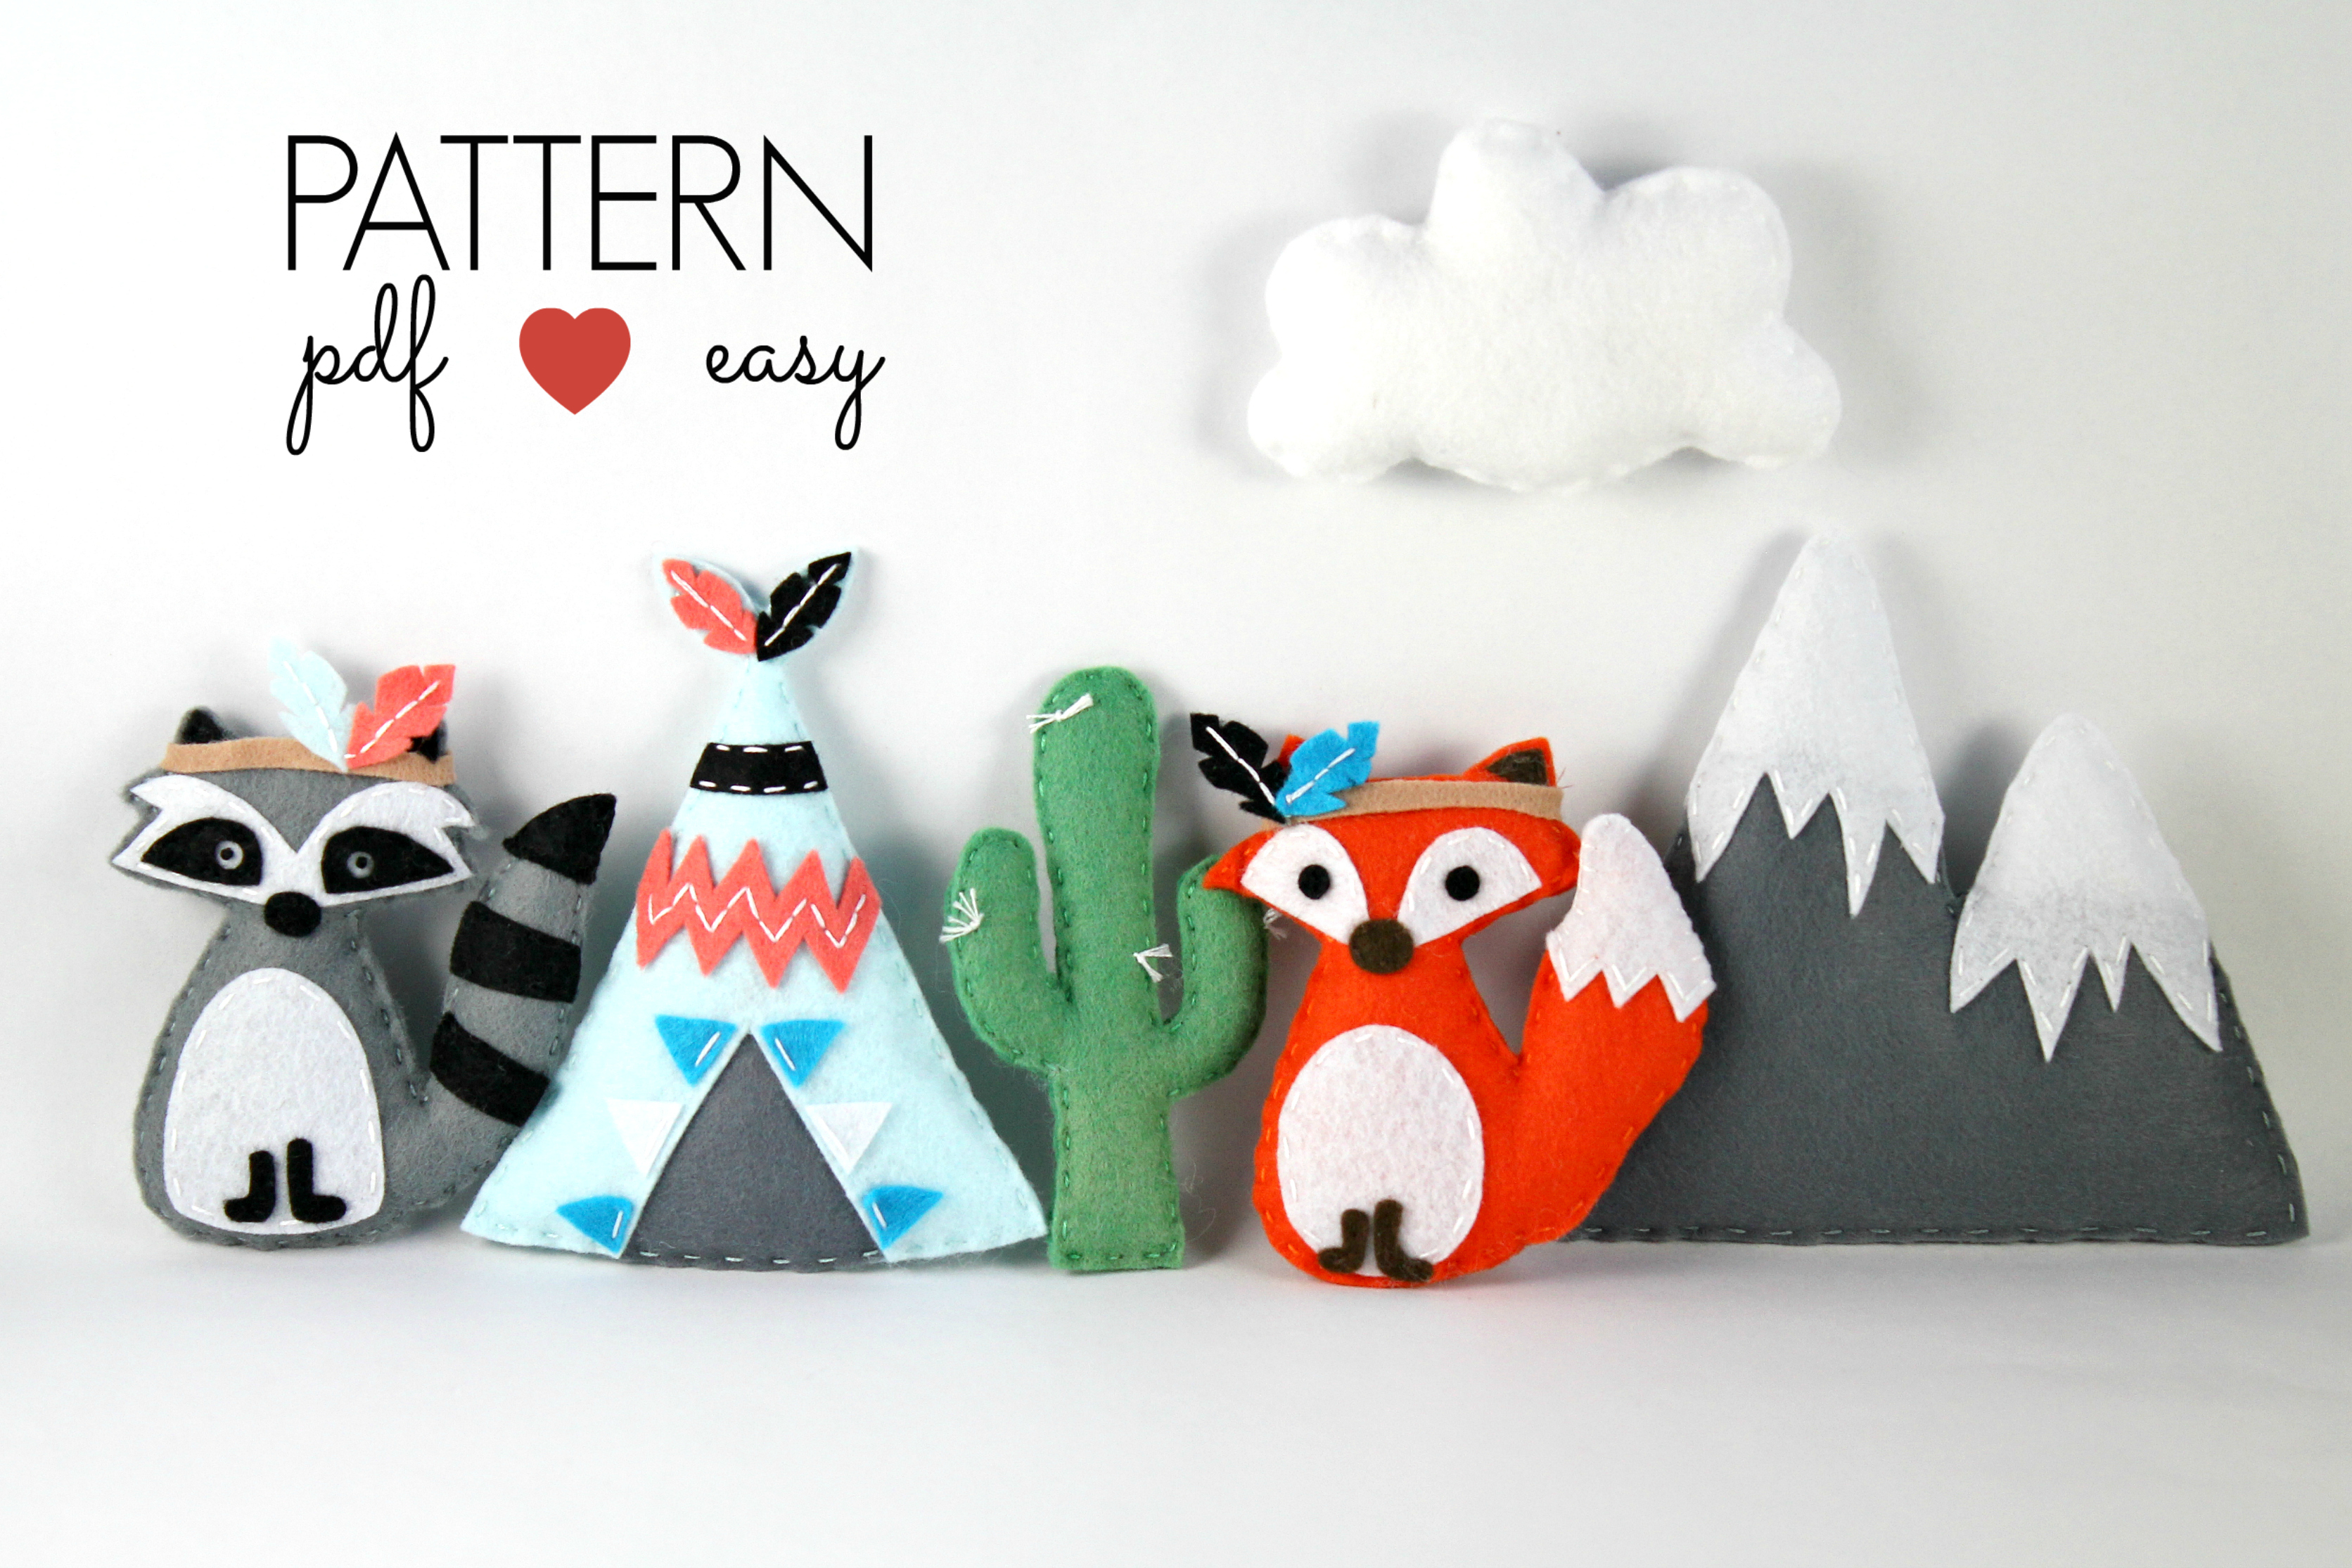 Tribal Felt Sewing Pattern - Tribal Baby Mobiles - Raccoon - Fox - Teepee - Snowy Mountain - Cactus